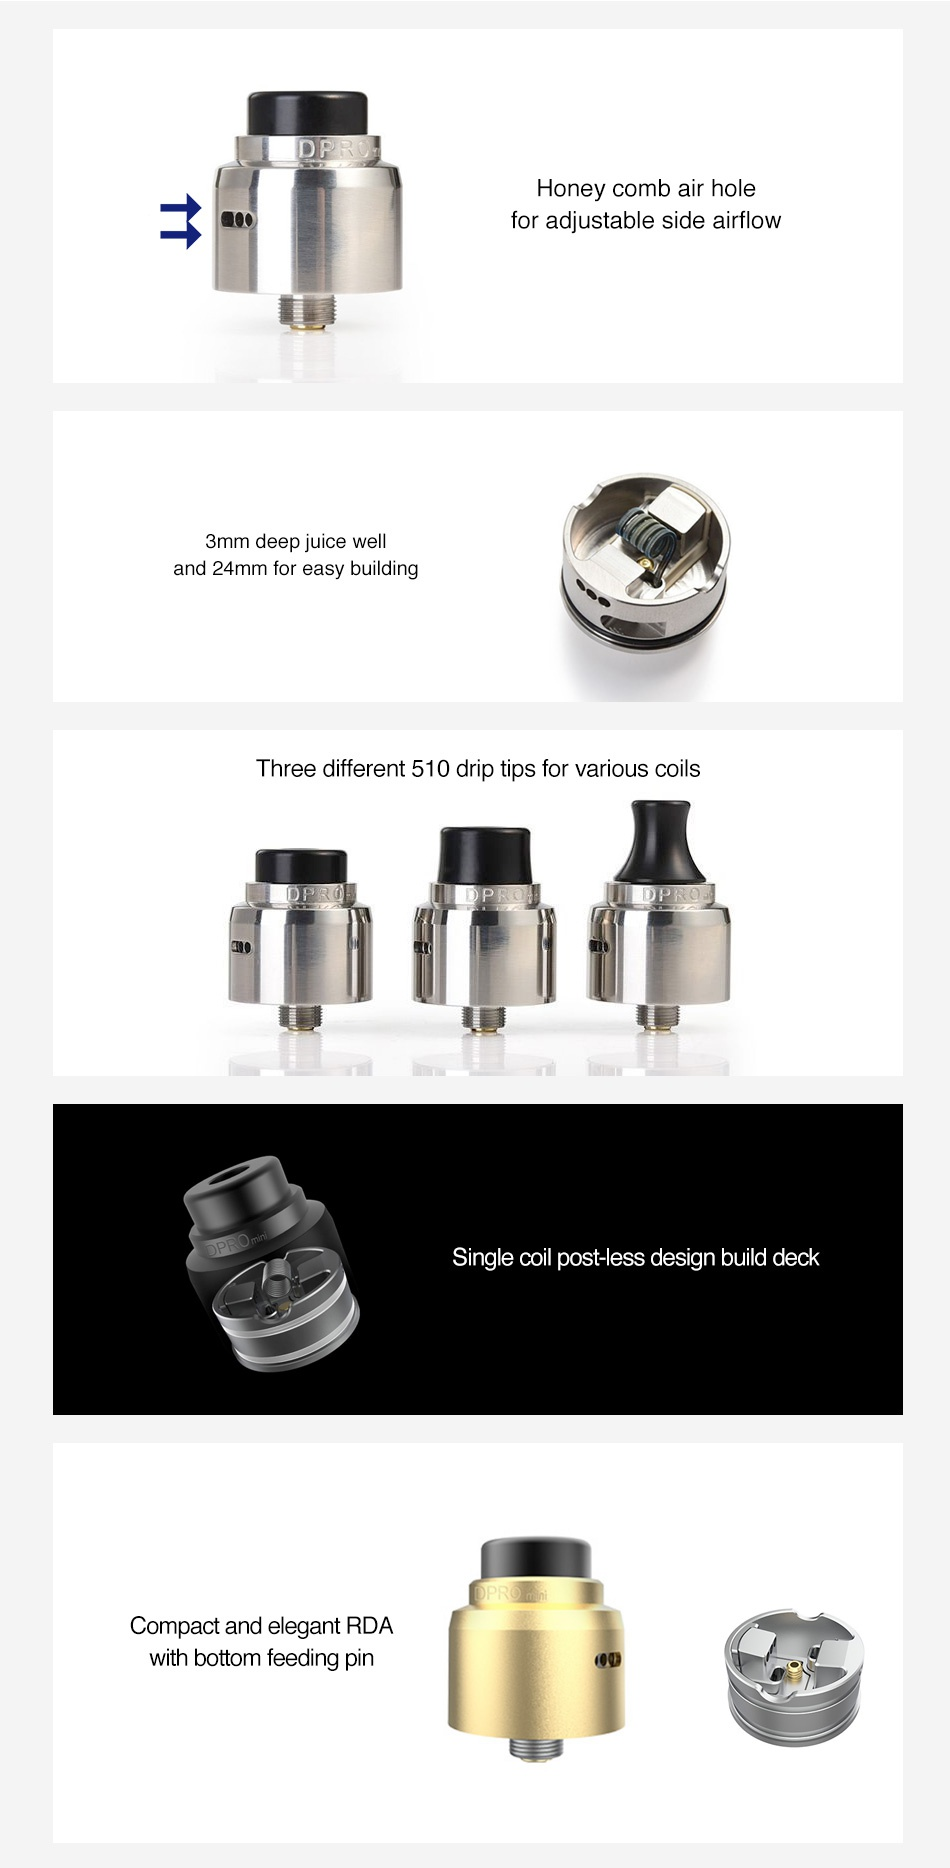 CoilART DPRO Mini RDA Honey comb air hole for adjustable side airflow 3mm deep juice well and 24mm for easy building Three different 510 drip tips for various coils Single coil post less design build deck Compact and elegant RDA with bottom feeding pin